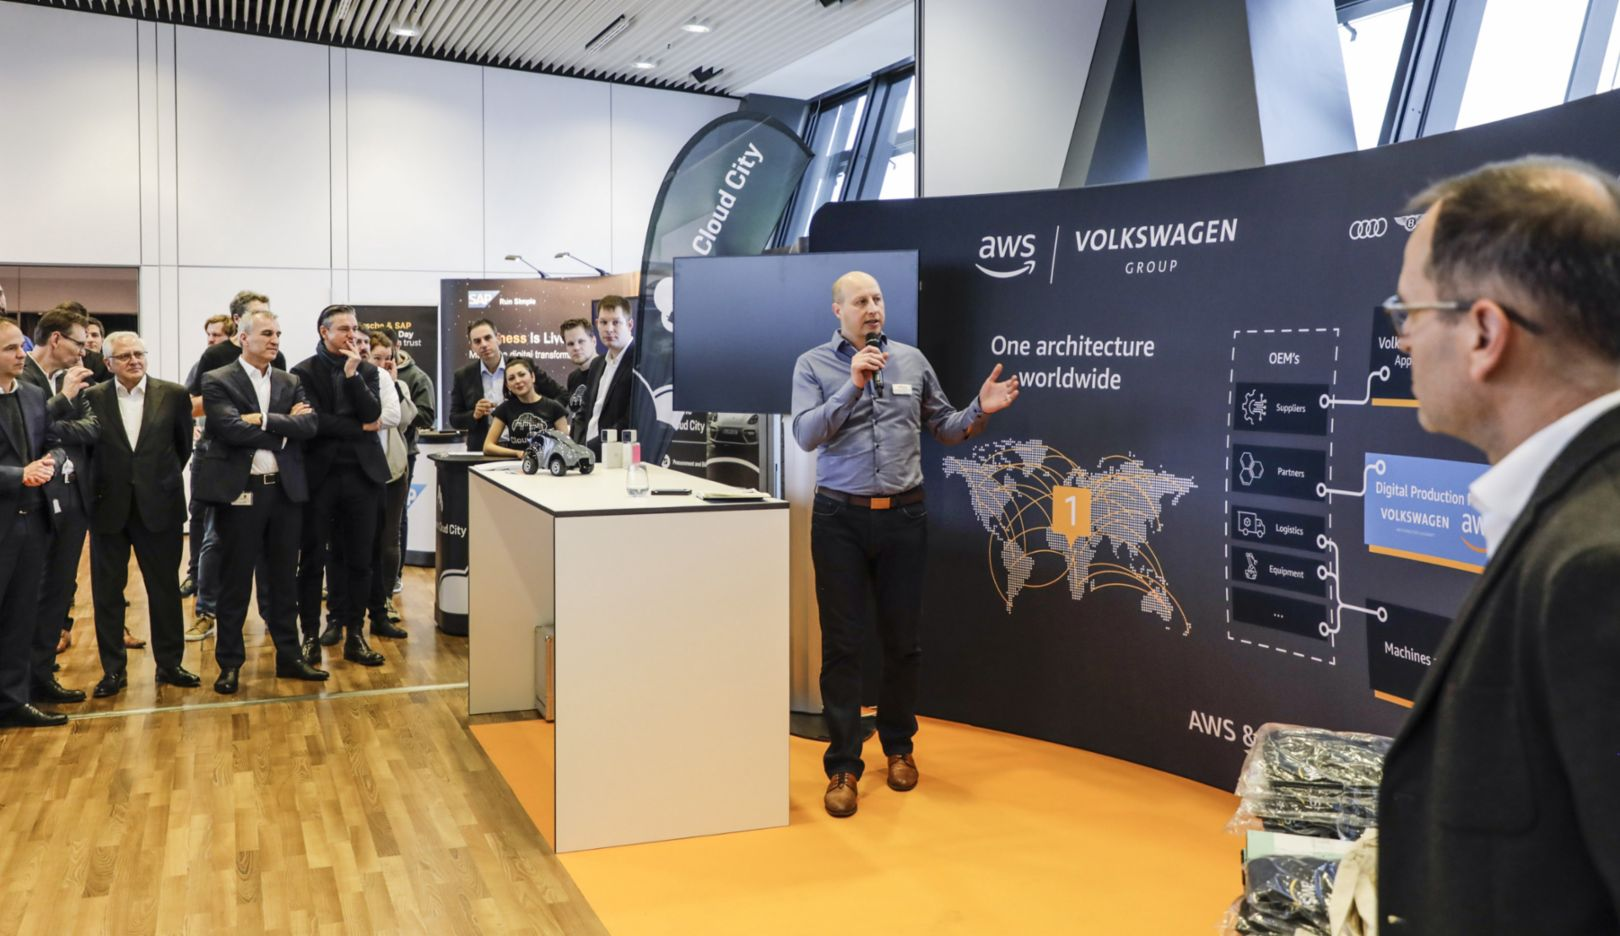 AWS presenting at the expo area of the Cloud Innovation Day, 2020, Porsche AG